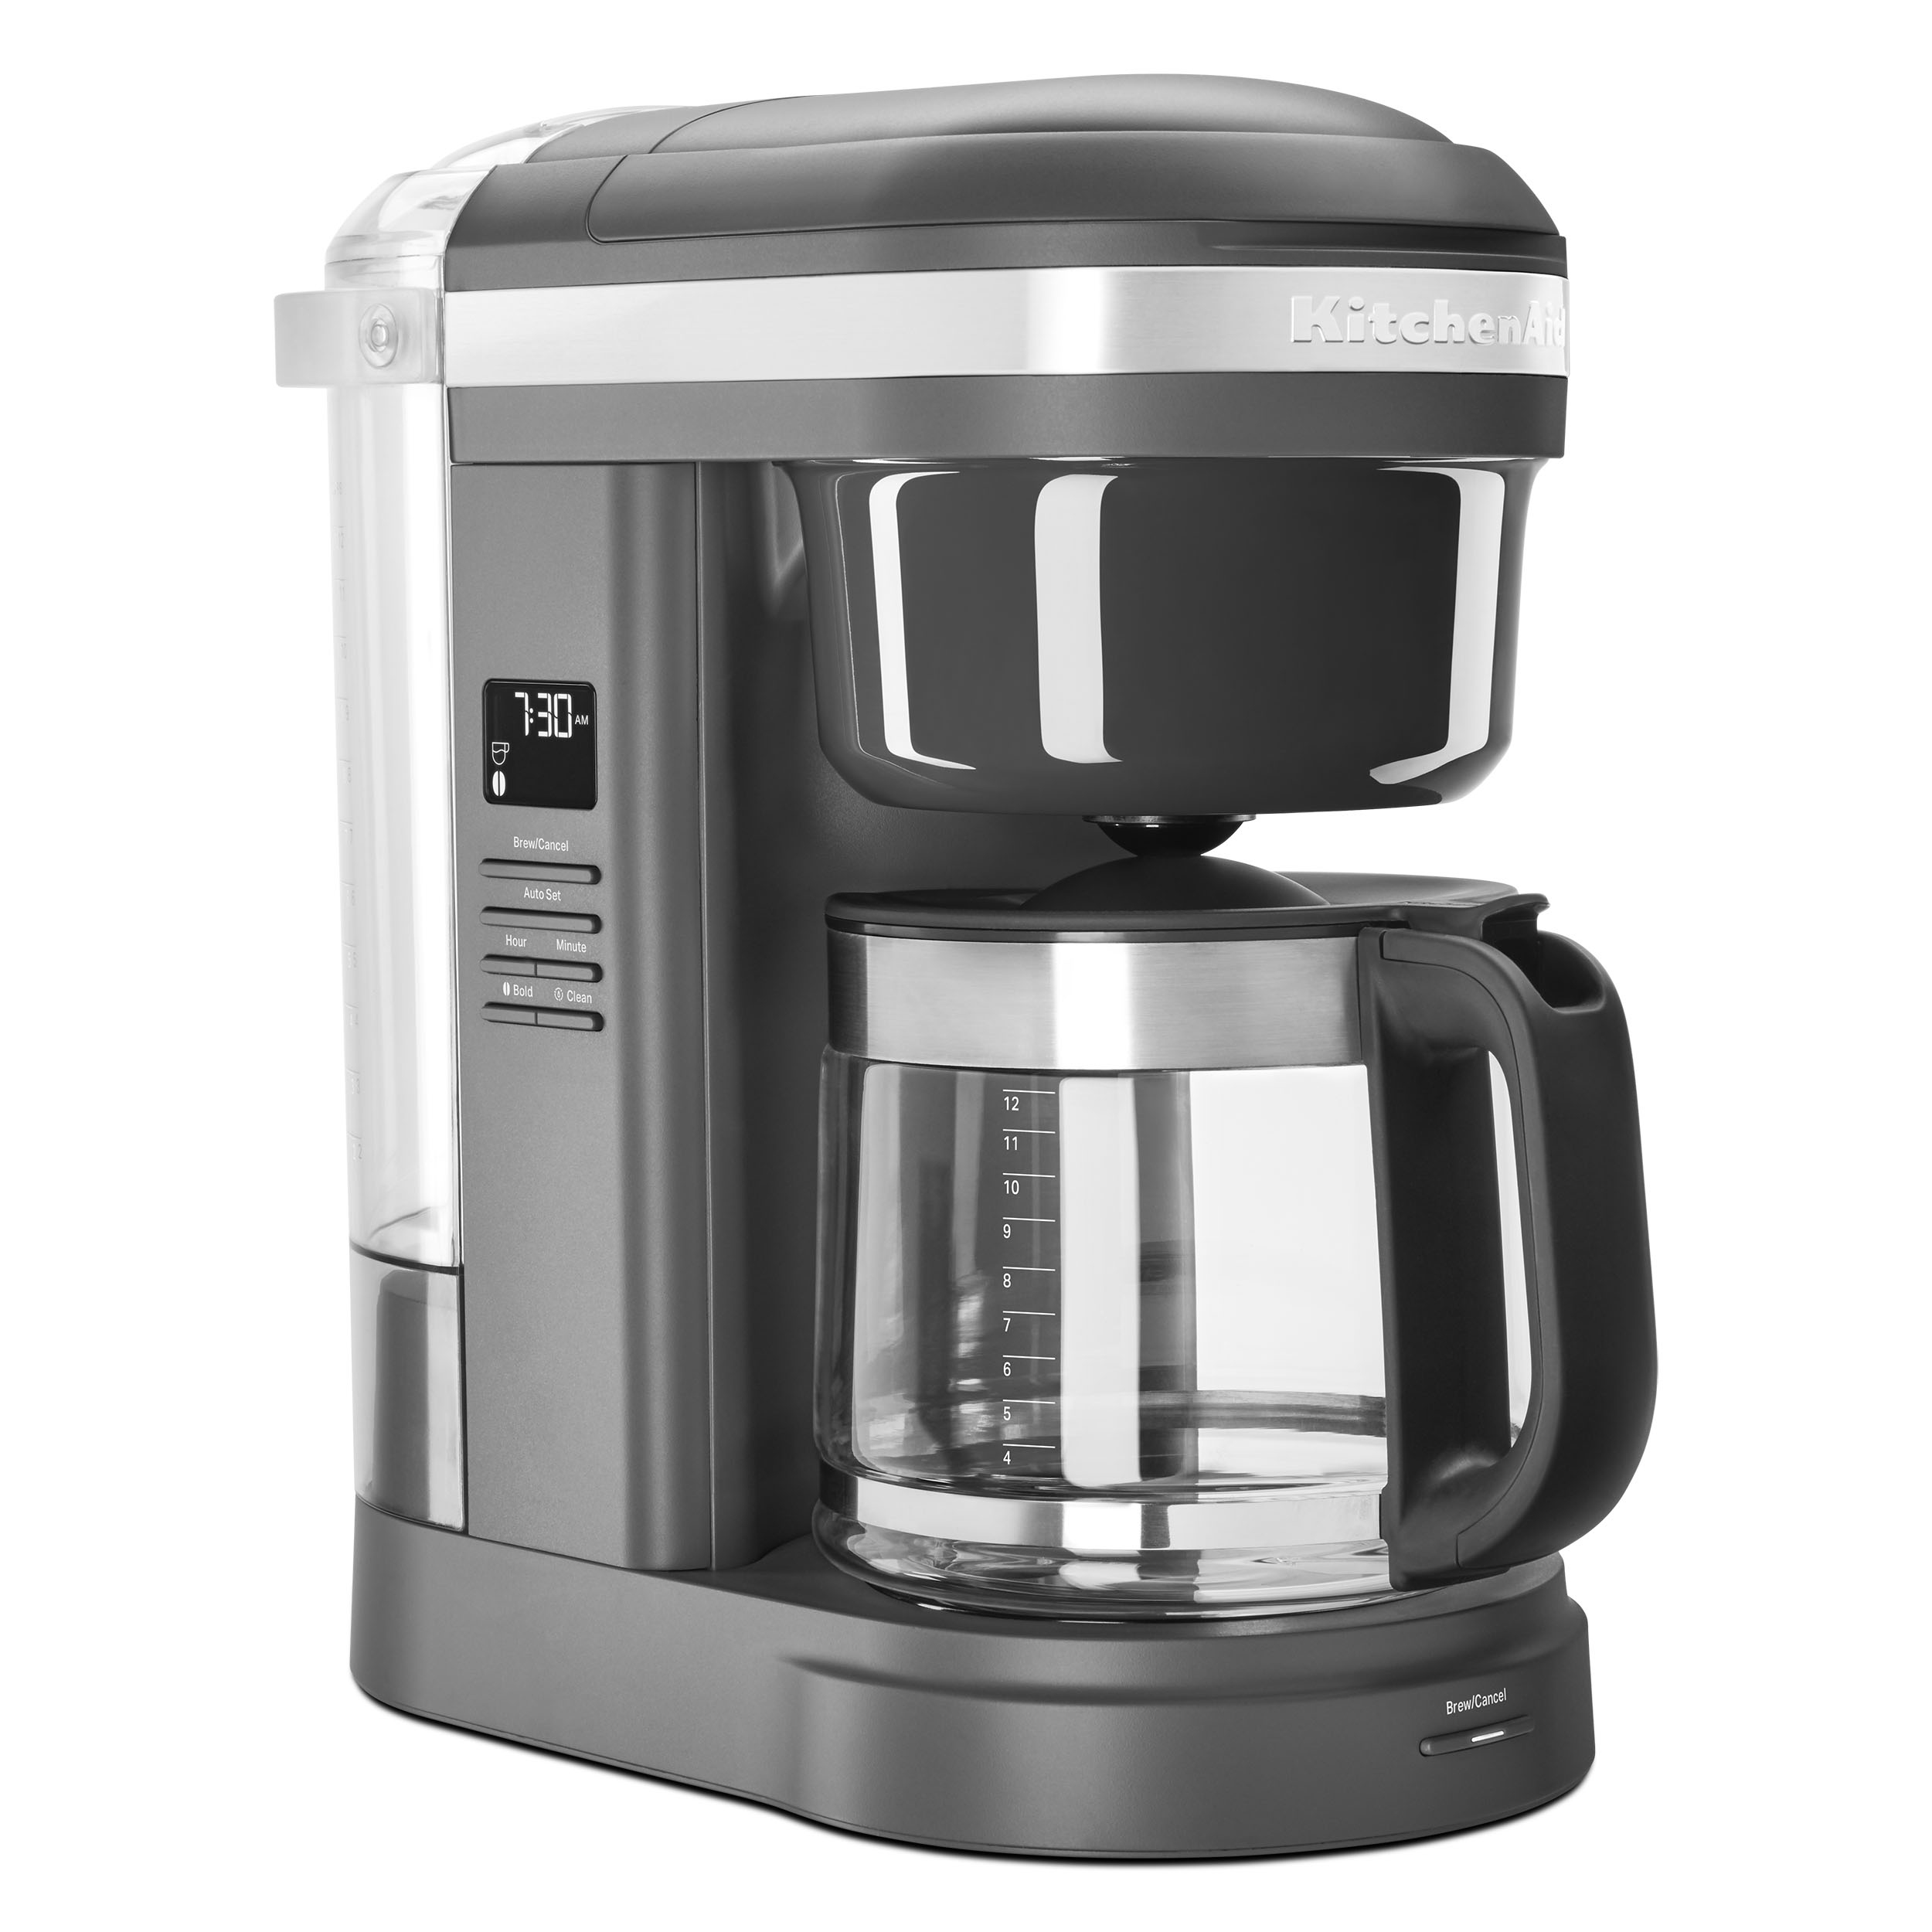 KitchenAid 12 Cup Drip Coffee Maker with Spiral Showerhead - Matte Charcoal Grey